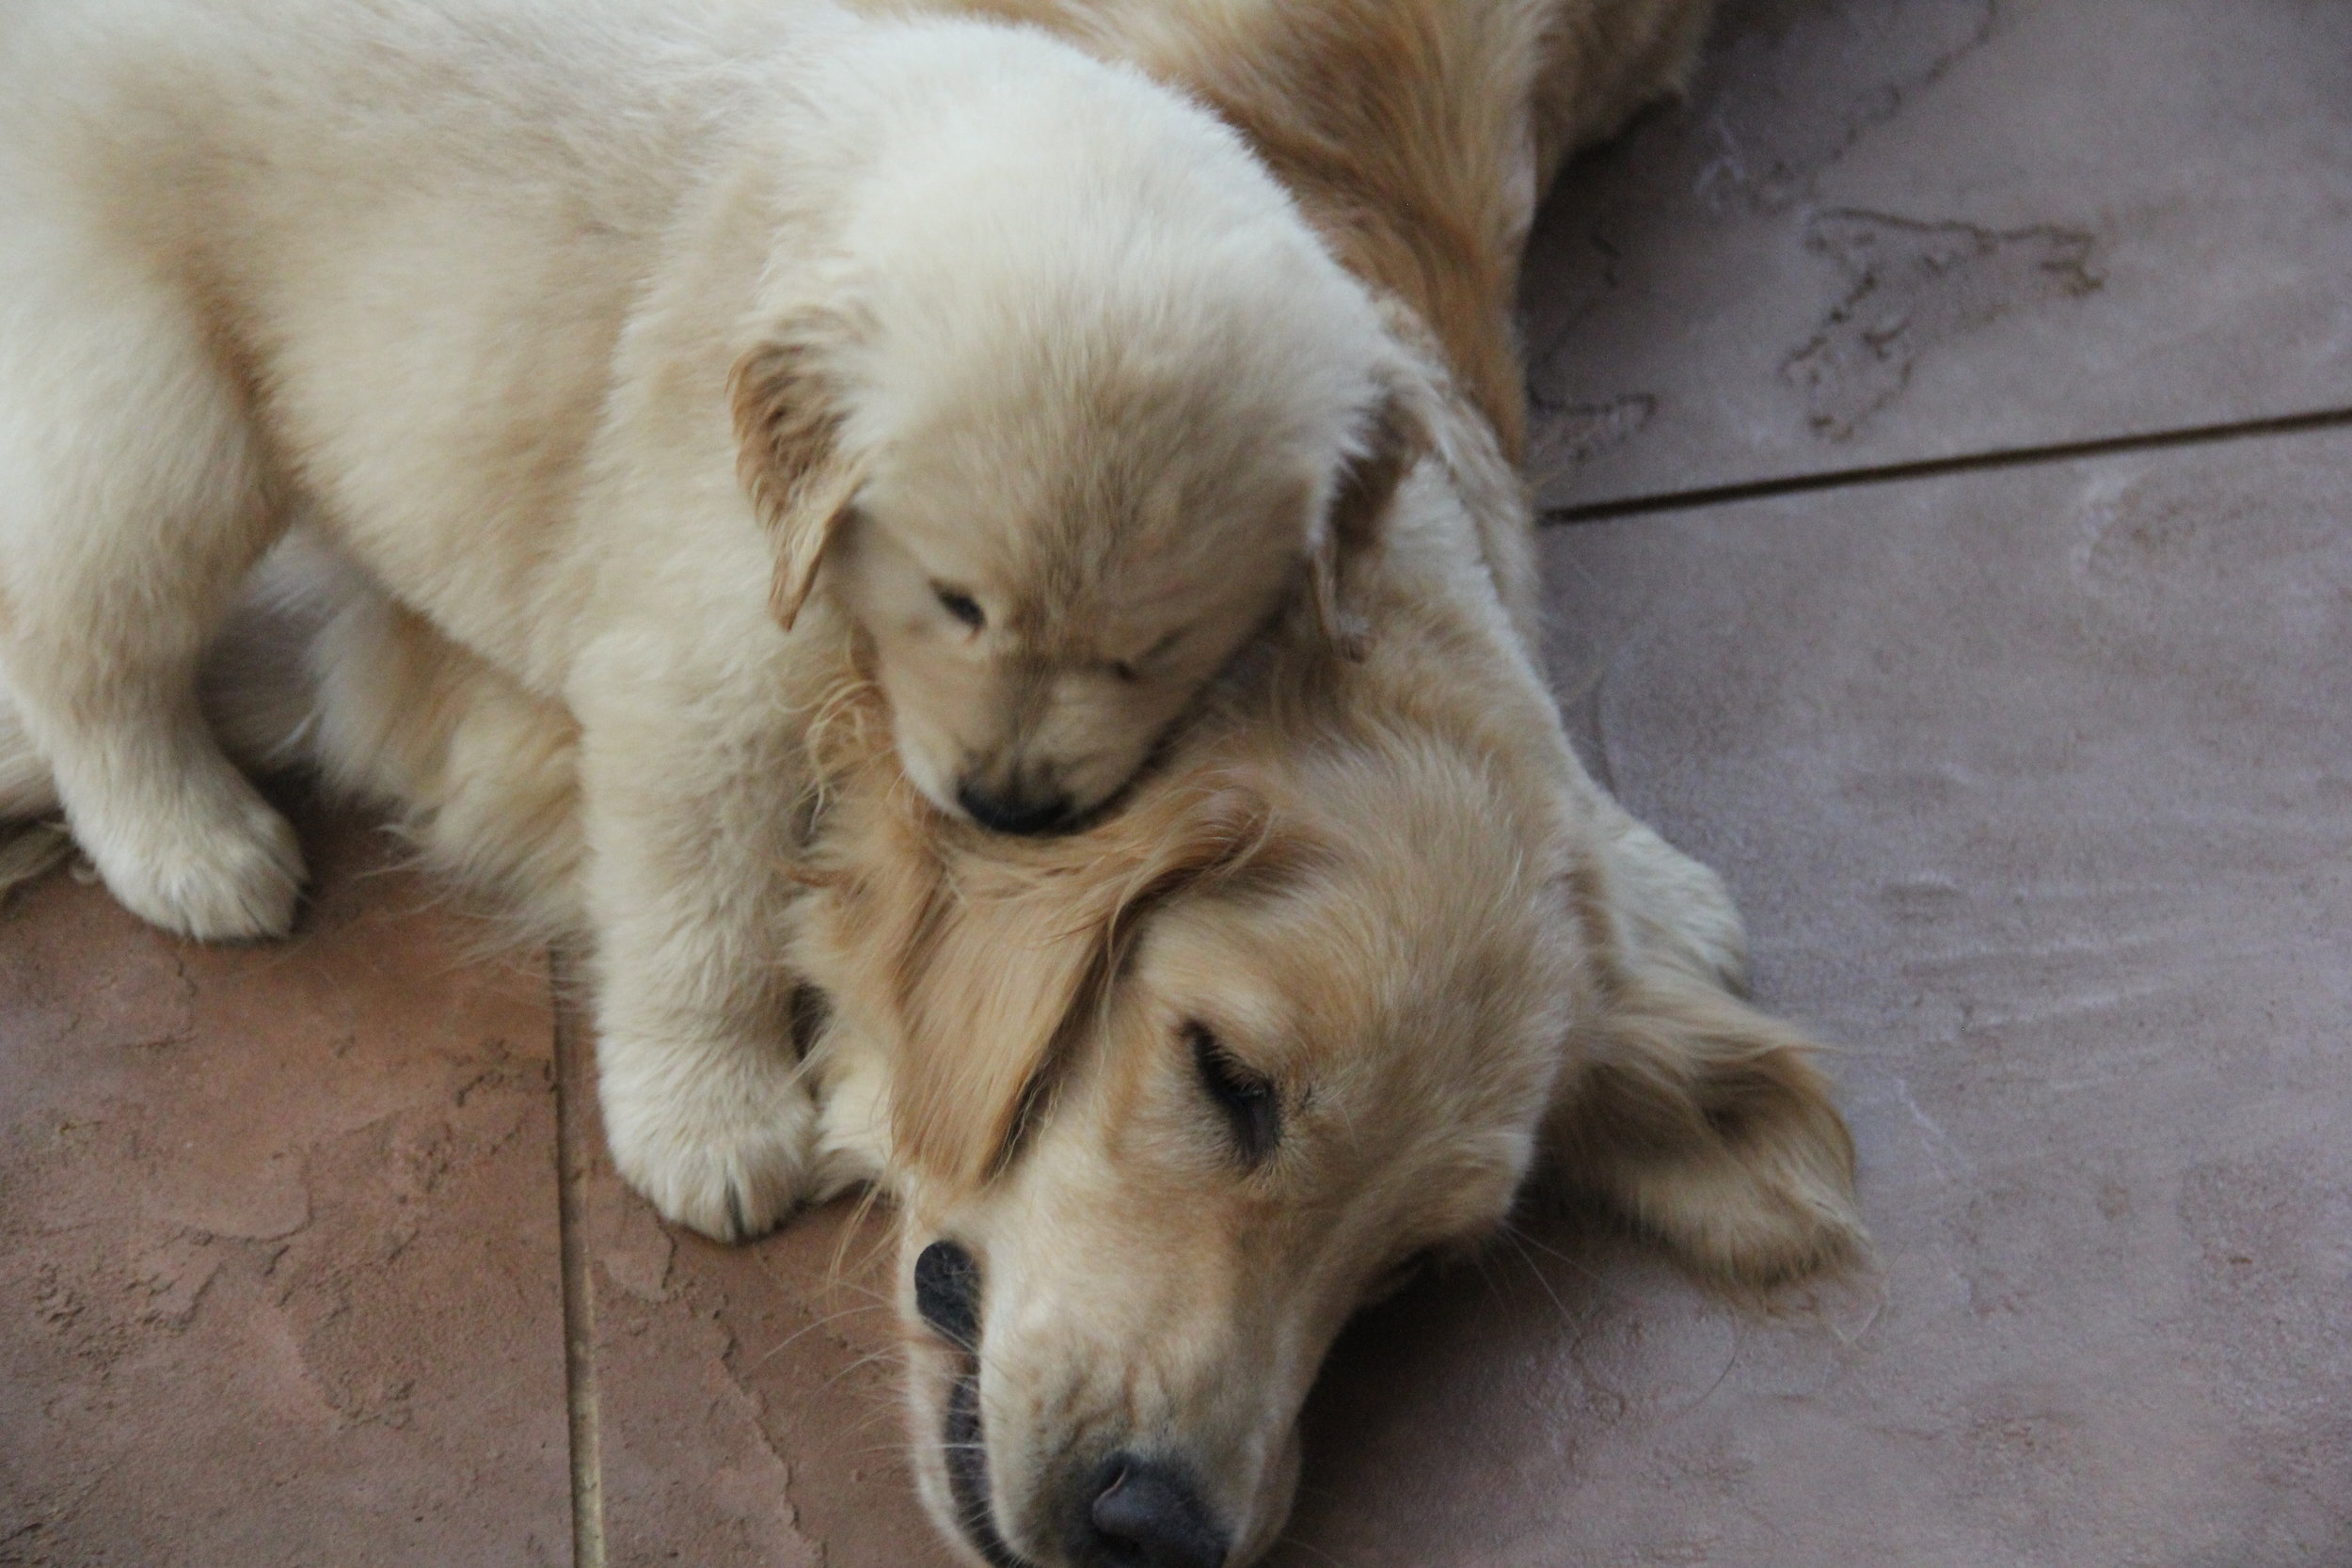 Gracie playing with her puppy